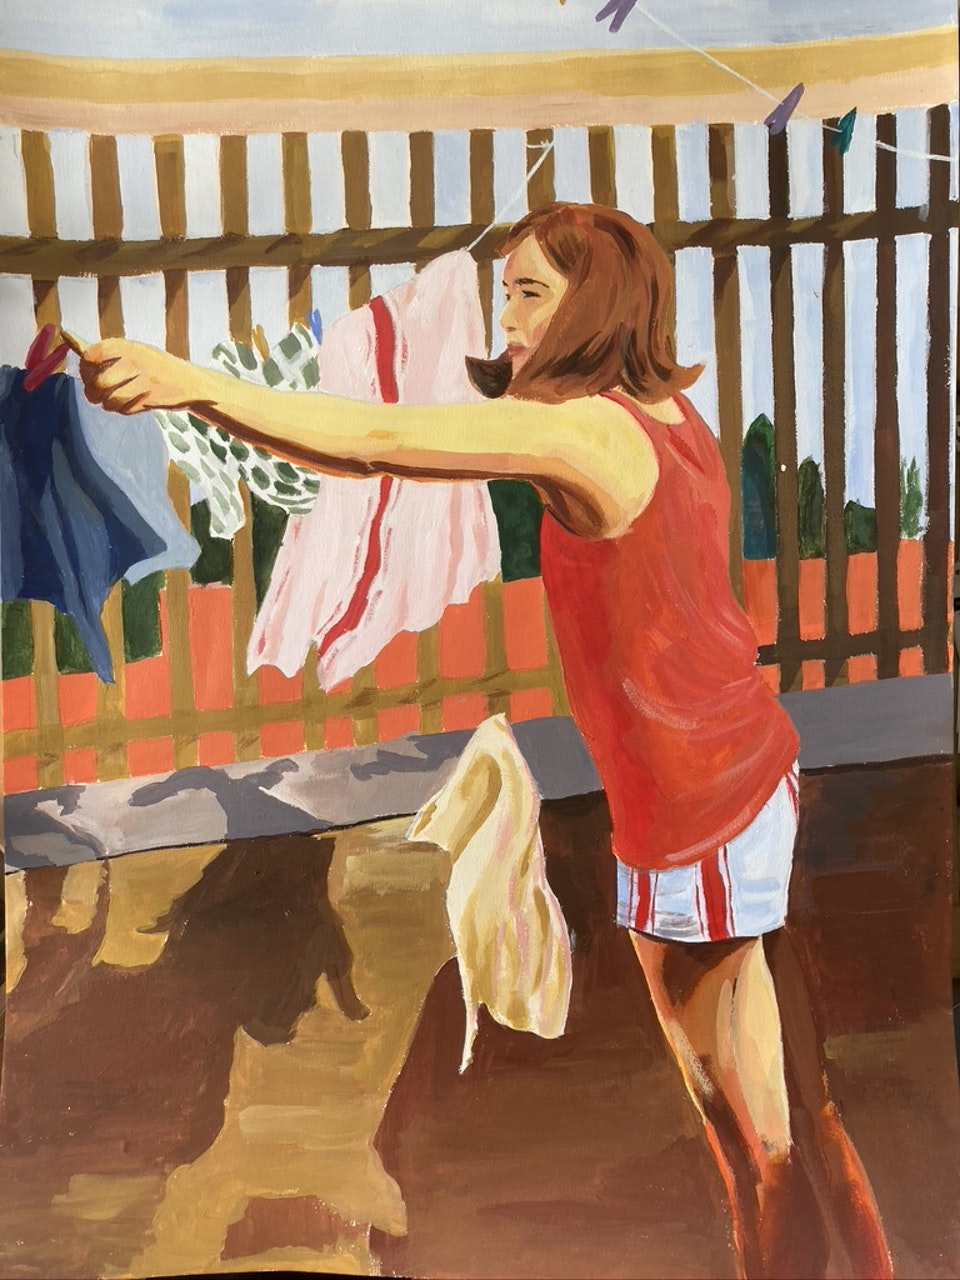 Everyday - Washing to the West - 2020 - Acrylic on Paper - 30 x 42 cm